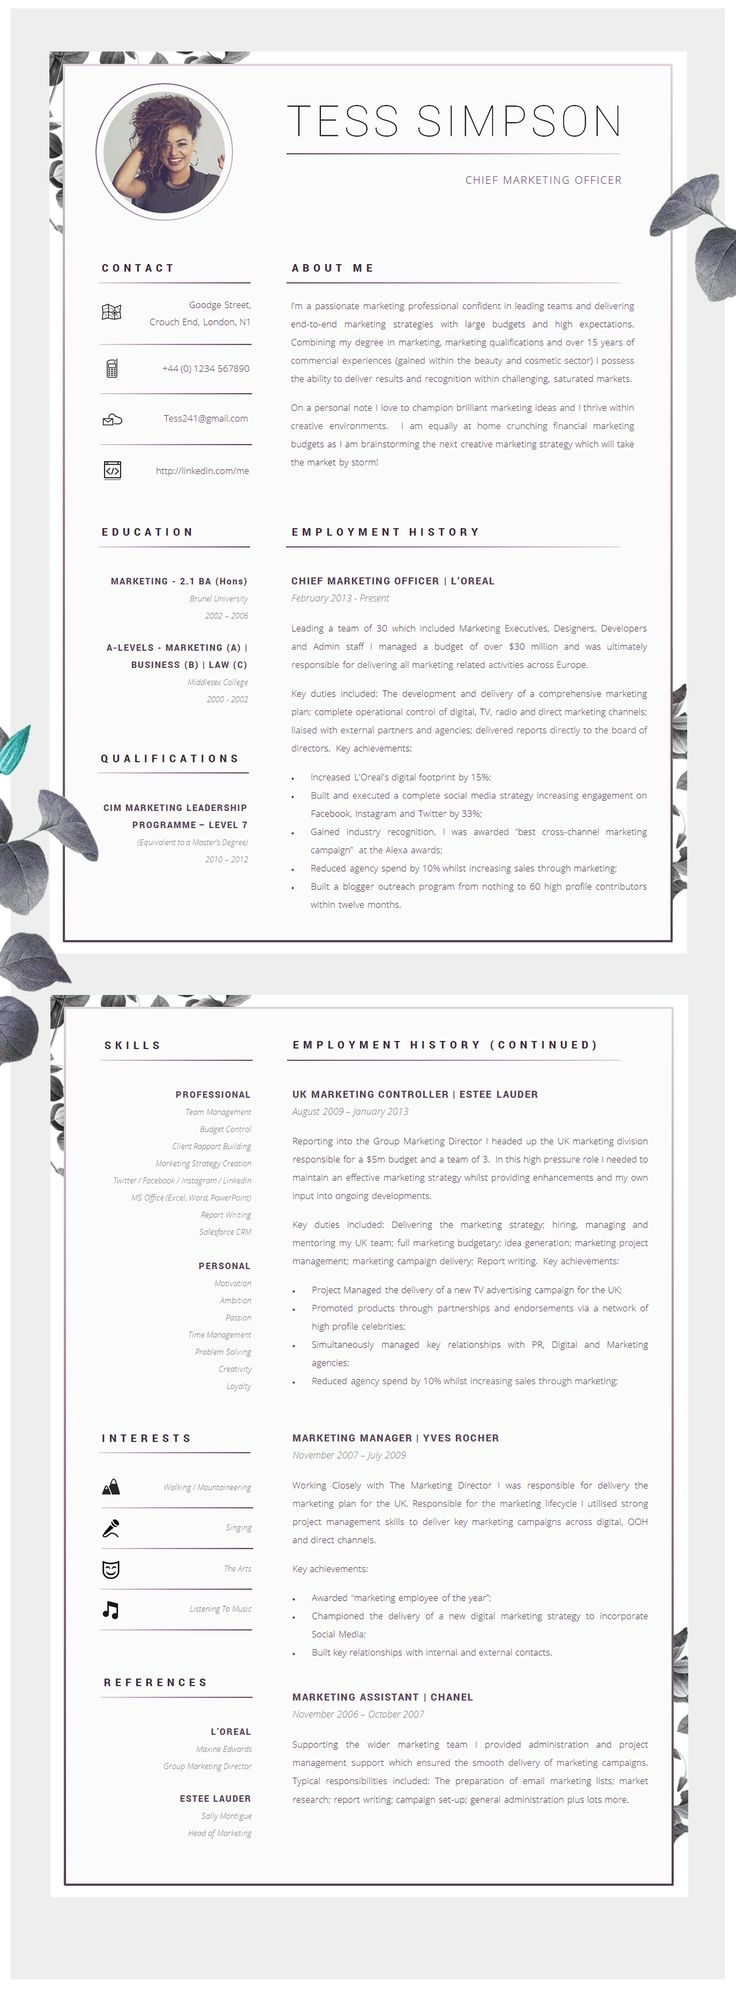 Wonderful 10 Steps To Creating A Resume Thin 10 Words To Put On Your Resume Square 100 Greatest Resume Words 100 Resume Words Youthful 10x10 Grid Template Dark12 Tab Divider Template 25  Best Ideas About Cv Template On Pinterest | Layout Cv ..